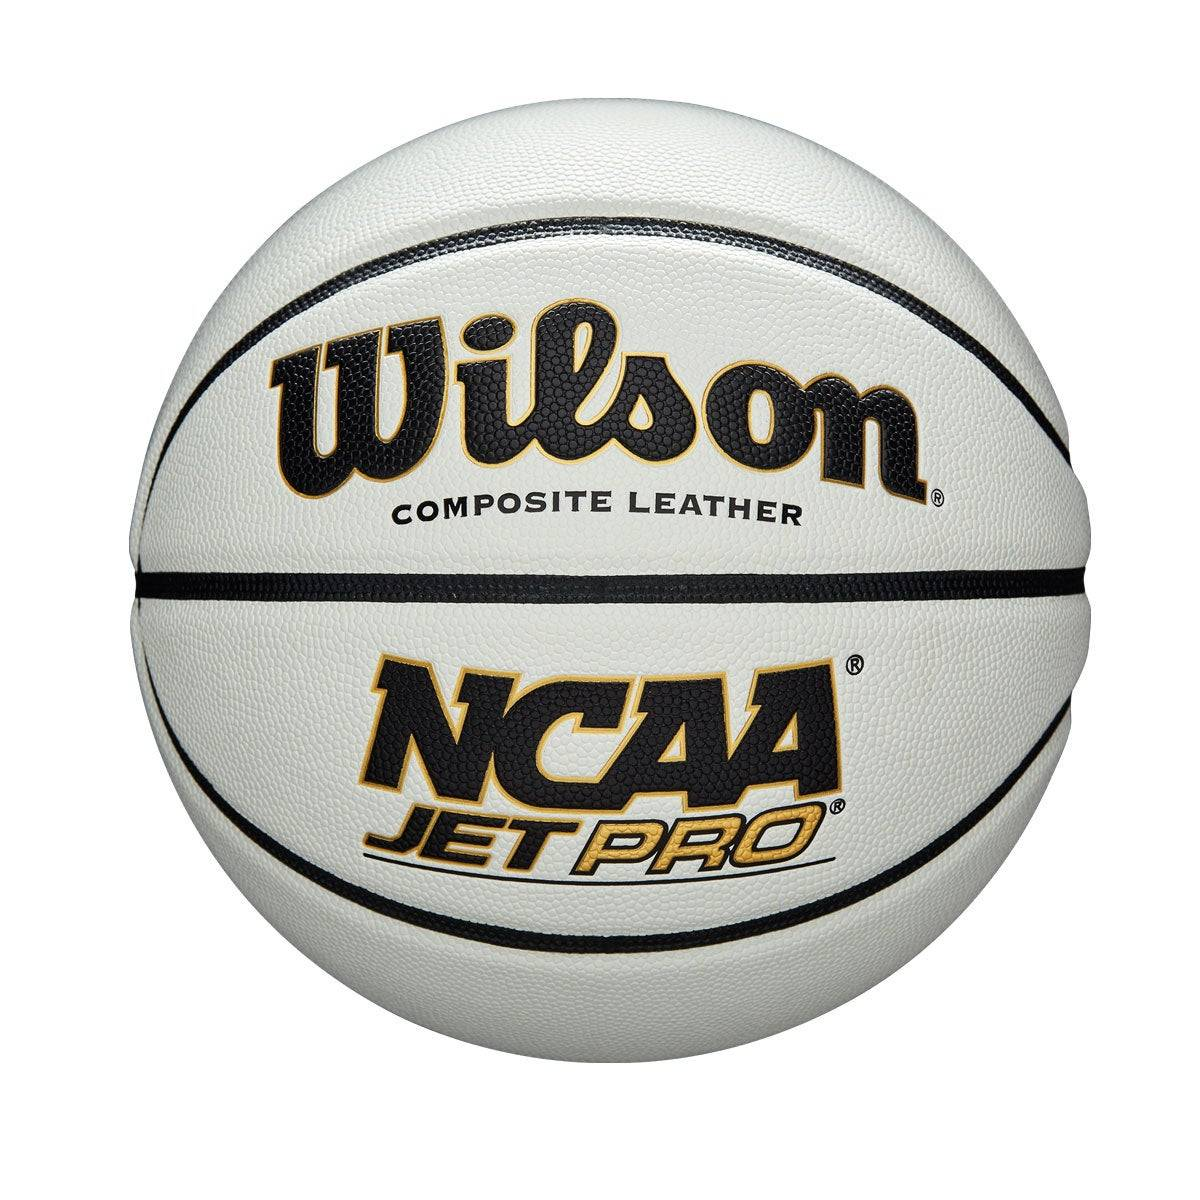 """Wilson NCAA Jet Pro Basketball in White - Size: Official - 29.5""""  - Unisex - White - Size: Official - 29.5"""""""